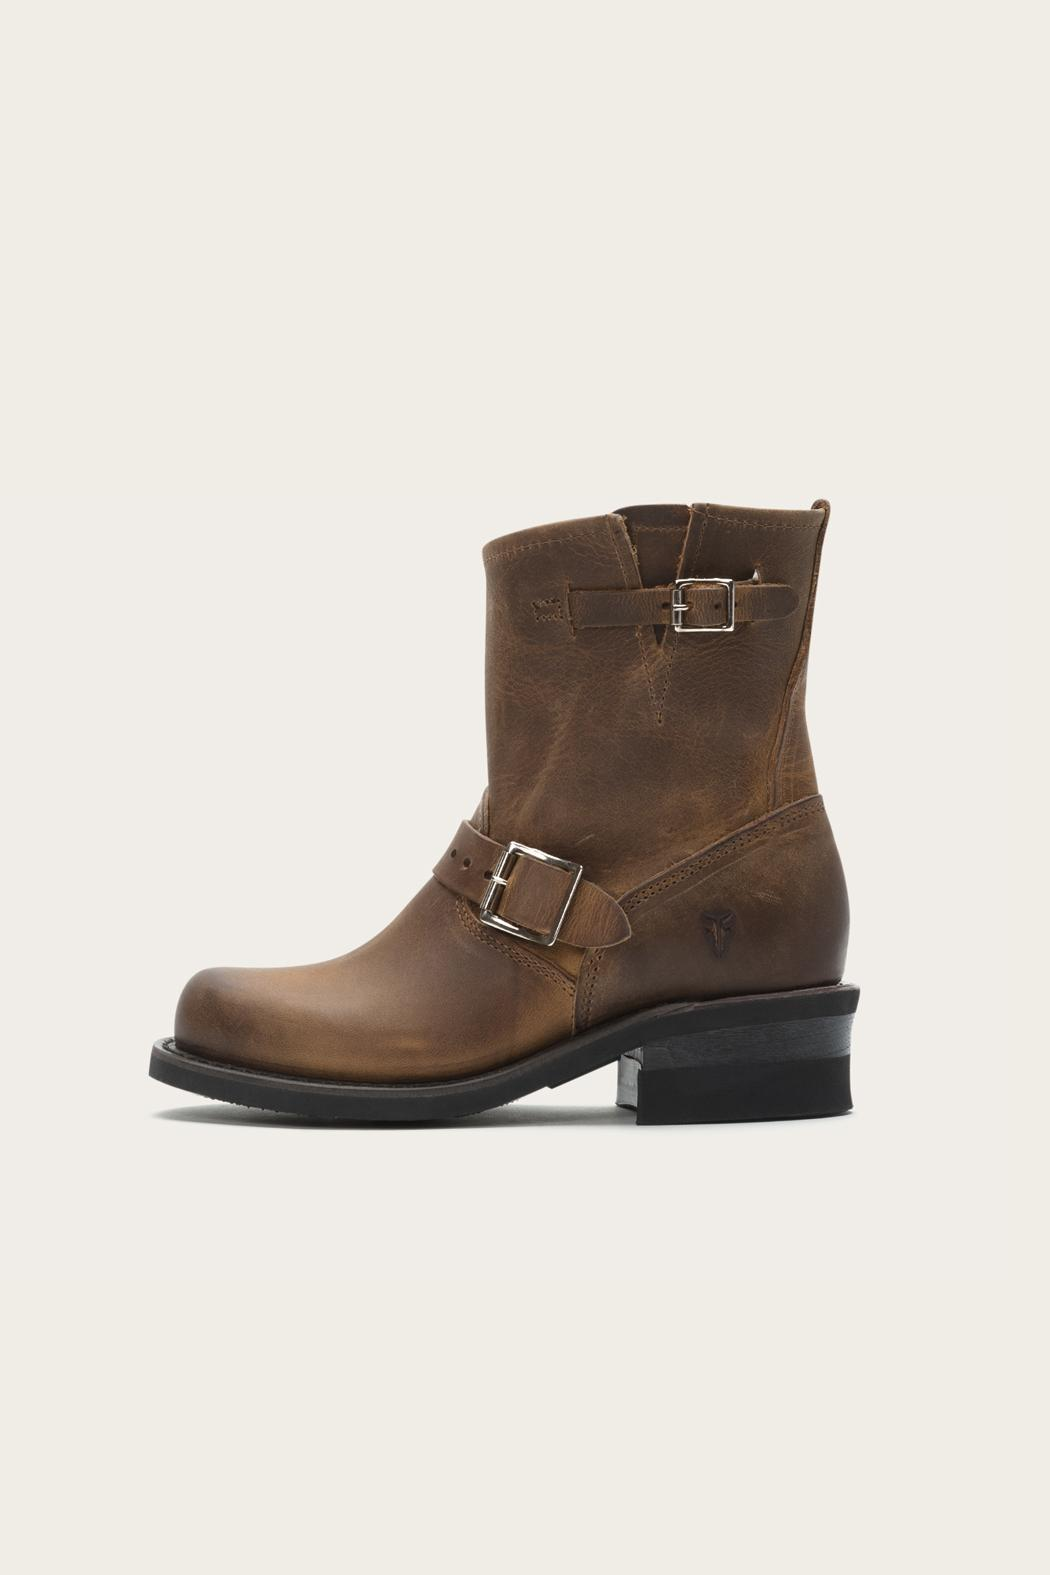 where to buy frye shoes in montreal